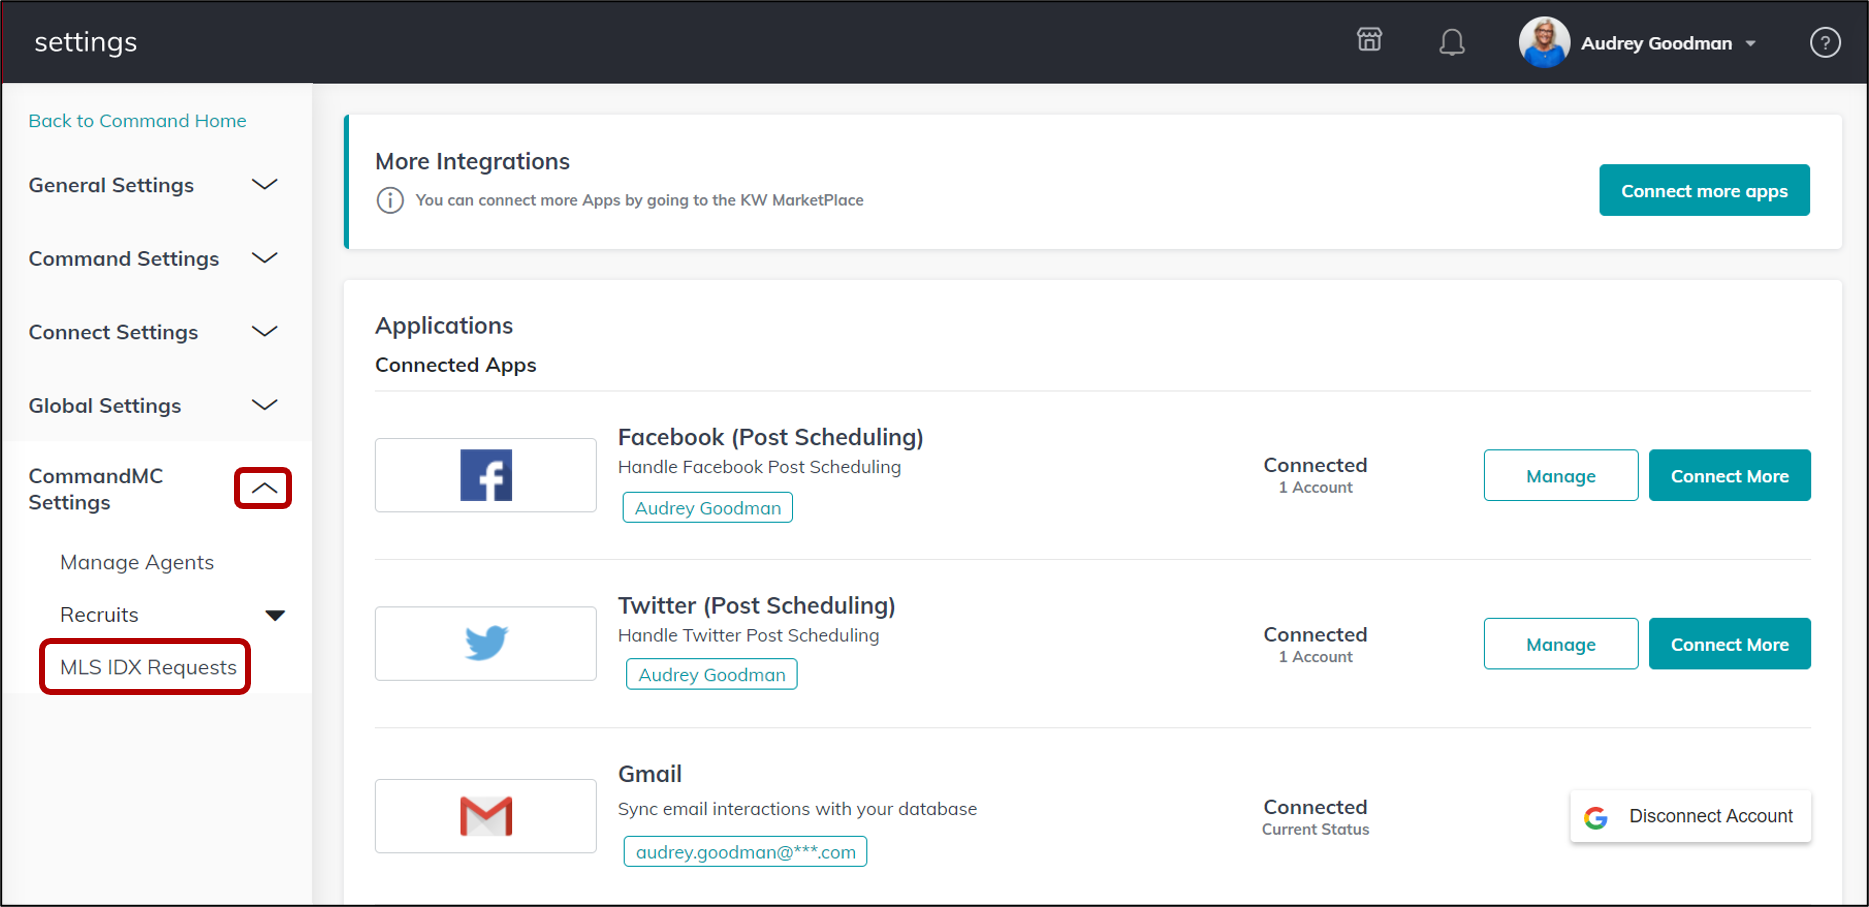 command_mc_settings_click_mls_idx.png